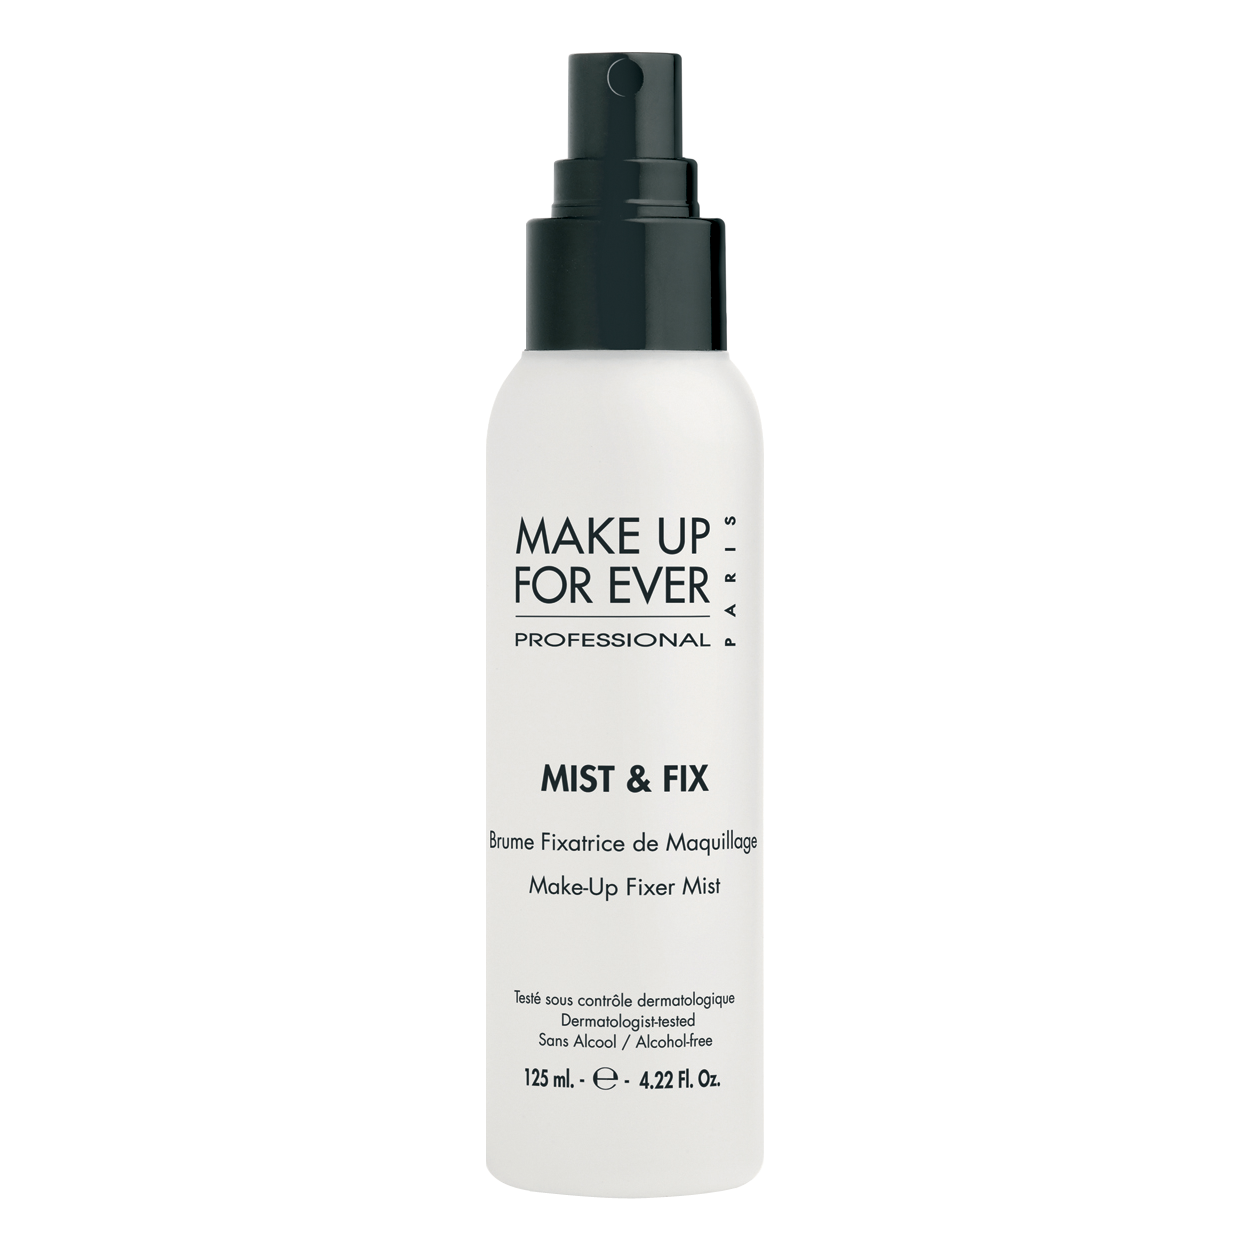 Mist & Fix Sealer MAKE UP FOR EVER Mists, Makeup